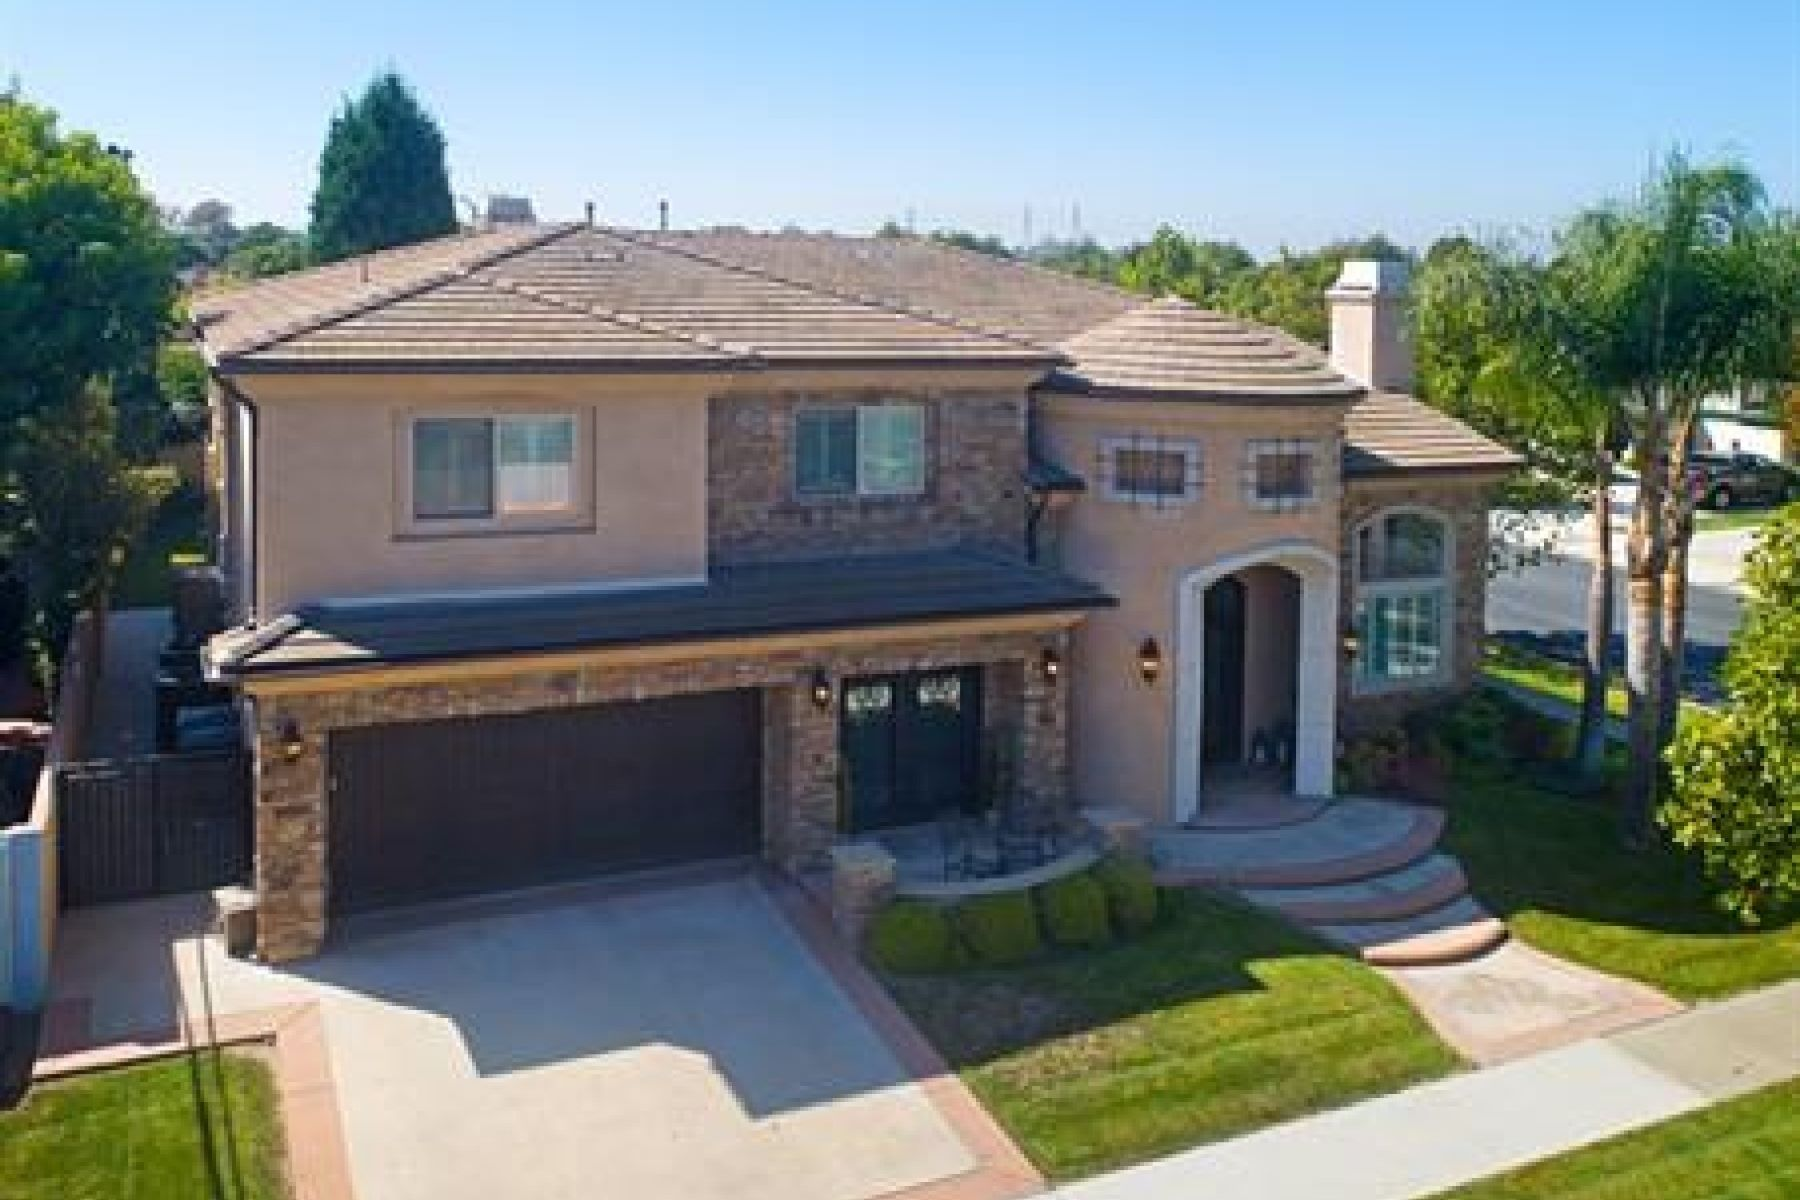 Single Family Homes for Sale at 3002 Kittrick Drive 3002 Kittrick Dr Rossmoor, California 90720 United States